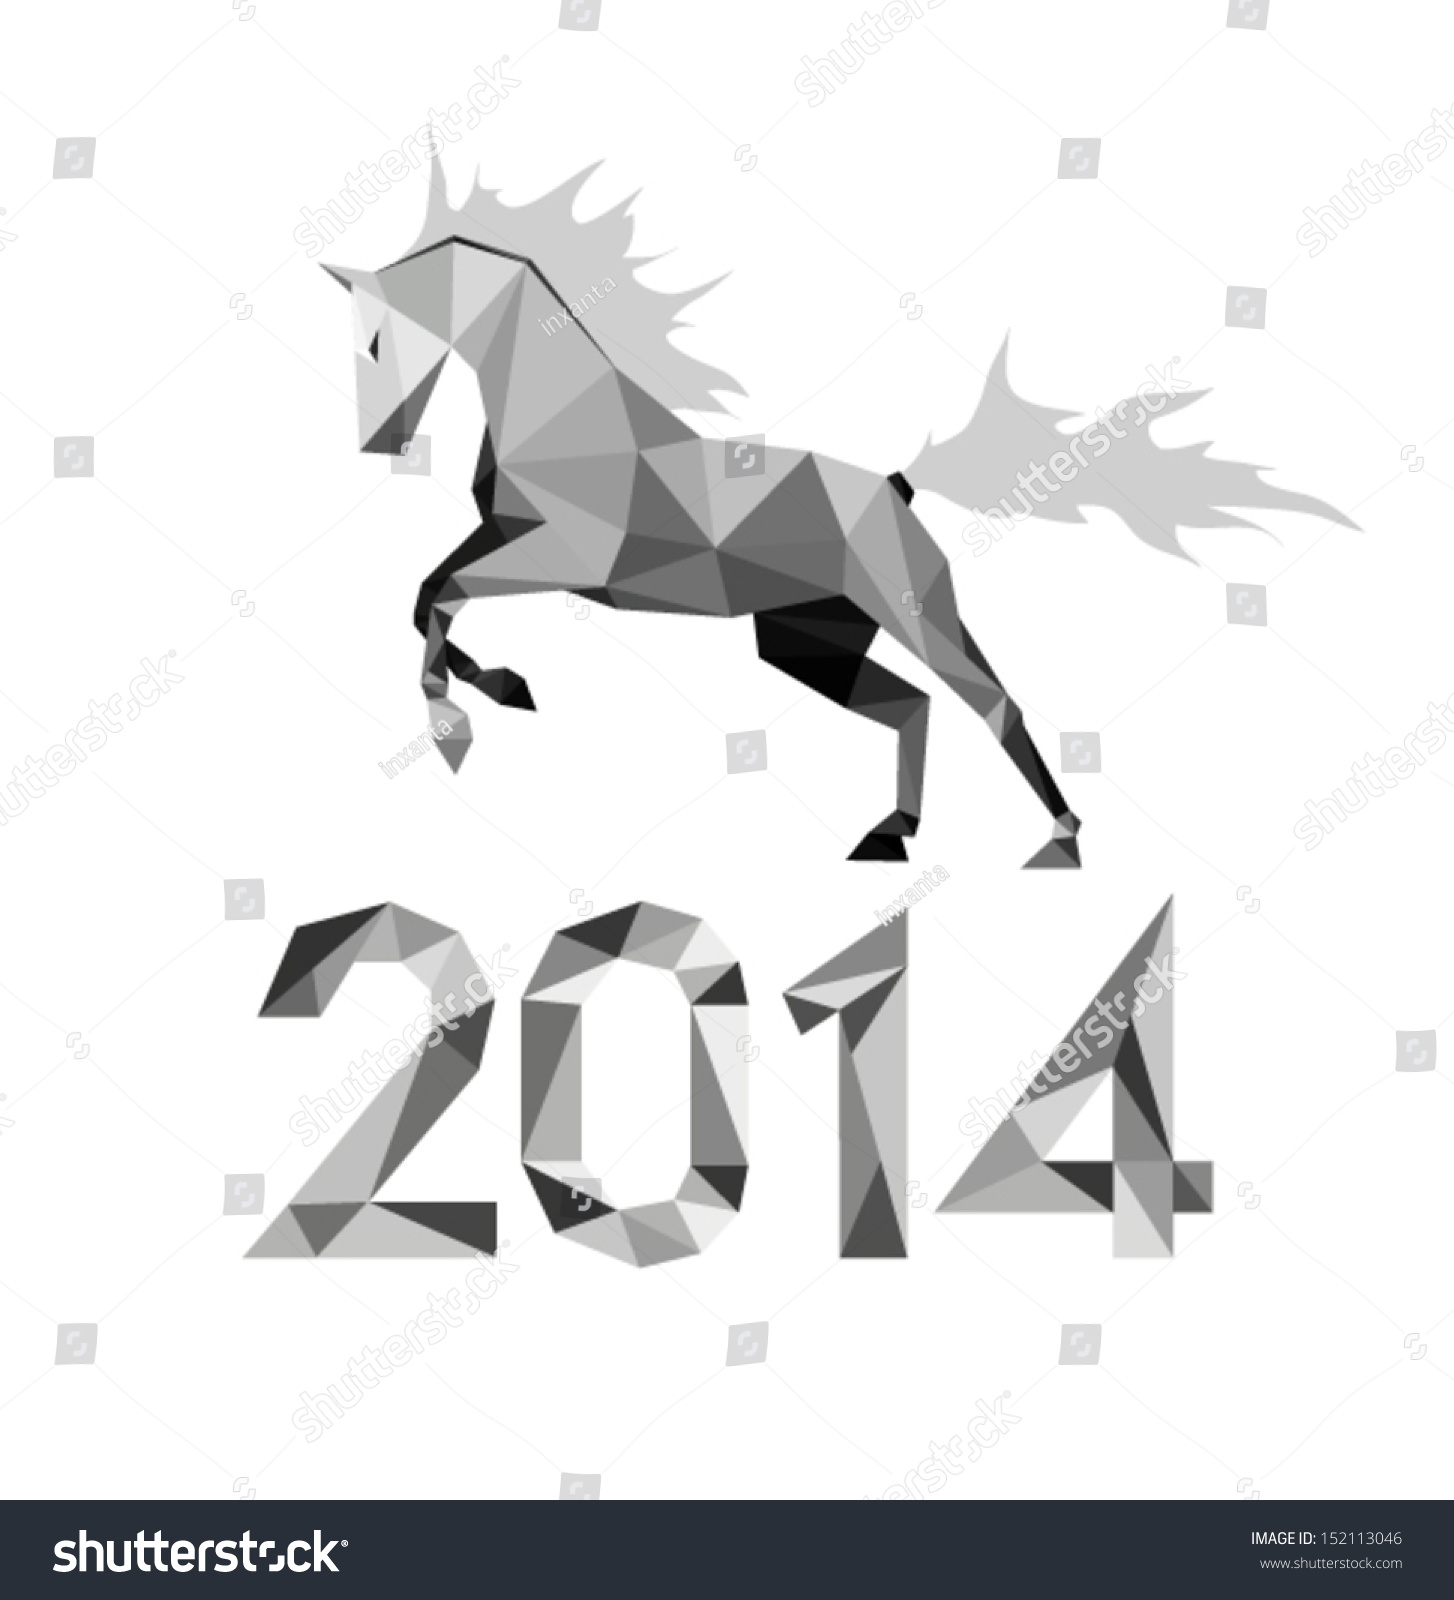 Running Horses Silhouette Wall Border Stock Vector The Running Horse Graphic